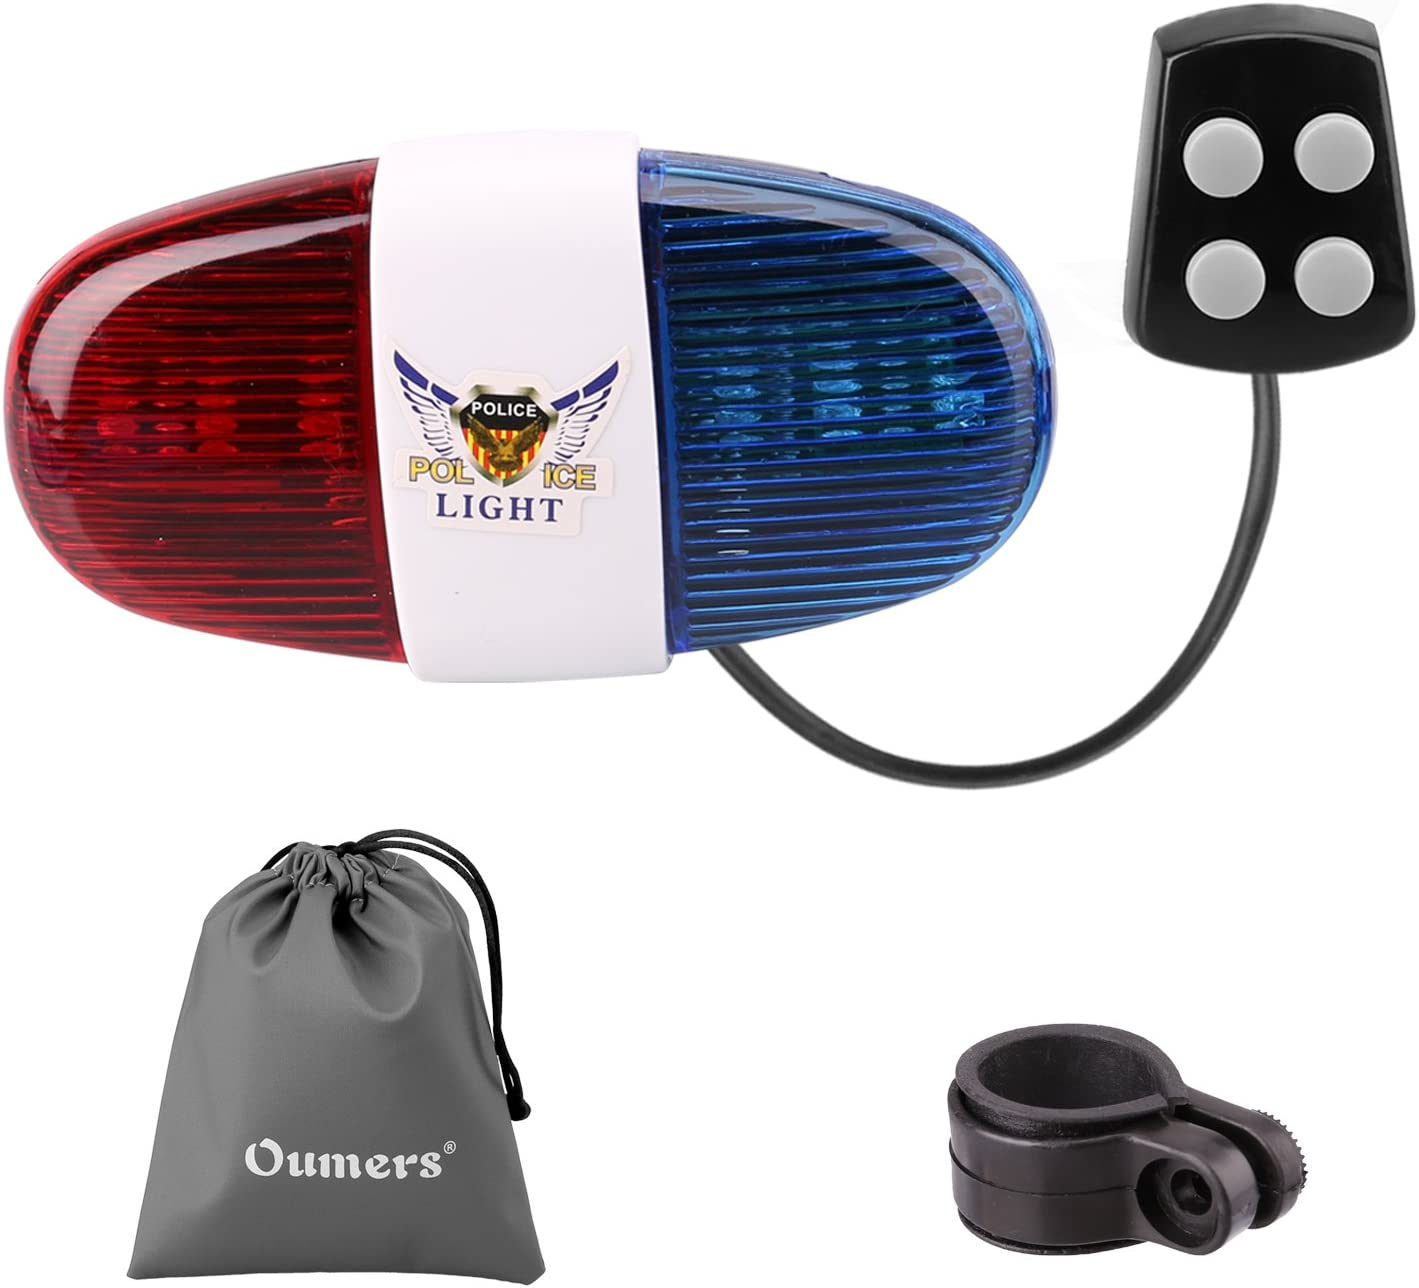 Oumers Bicycle Police Sound Light, Bike LED Light Electric Horn Siren Horn Bell, 5 LED Light 4 Sounds Trumpet, Warning Safety Light, Waterproof Bicycle Lights Accessories, No Batteries in